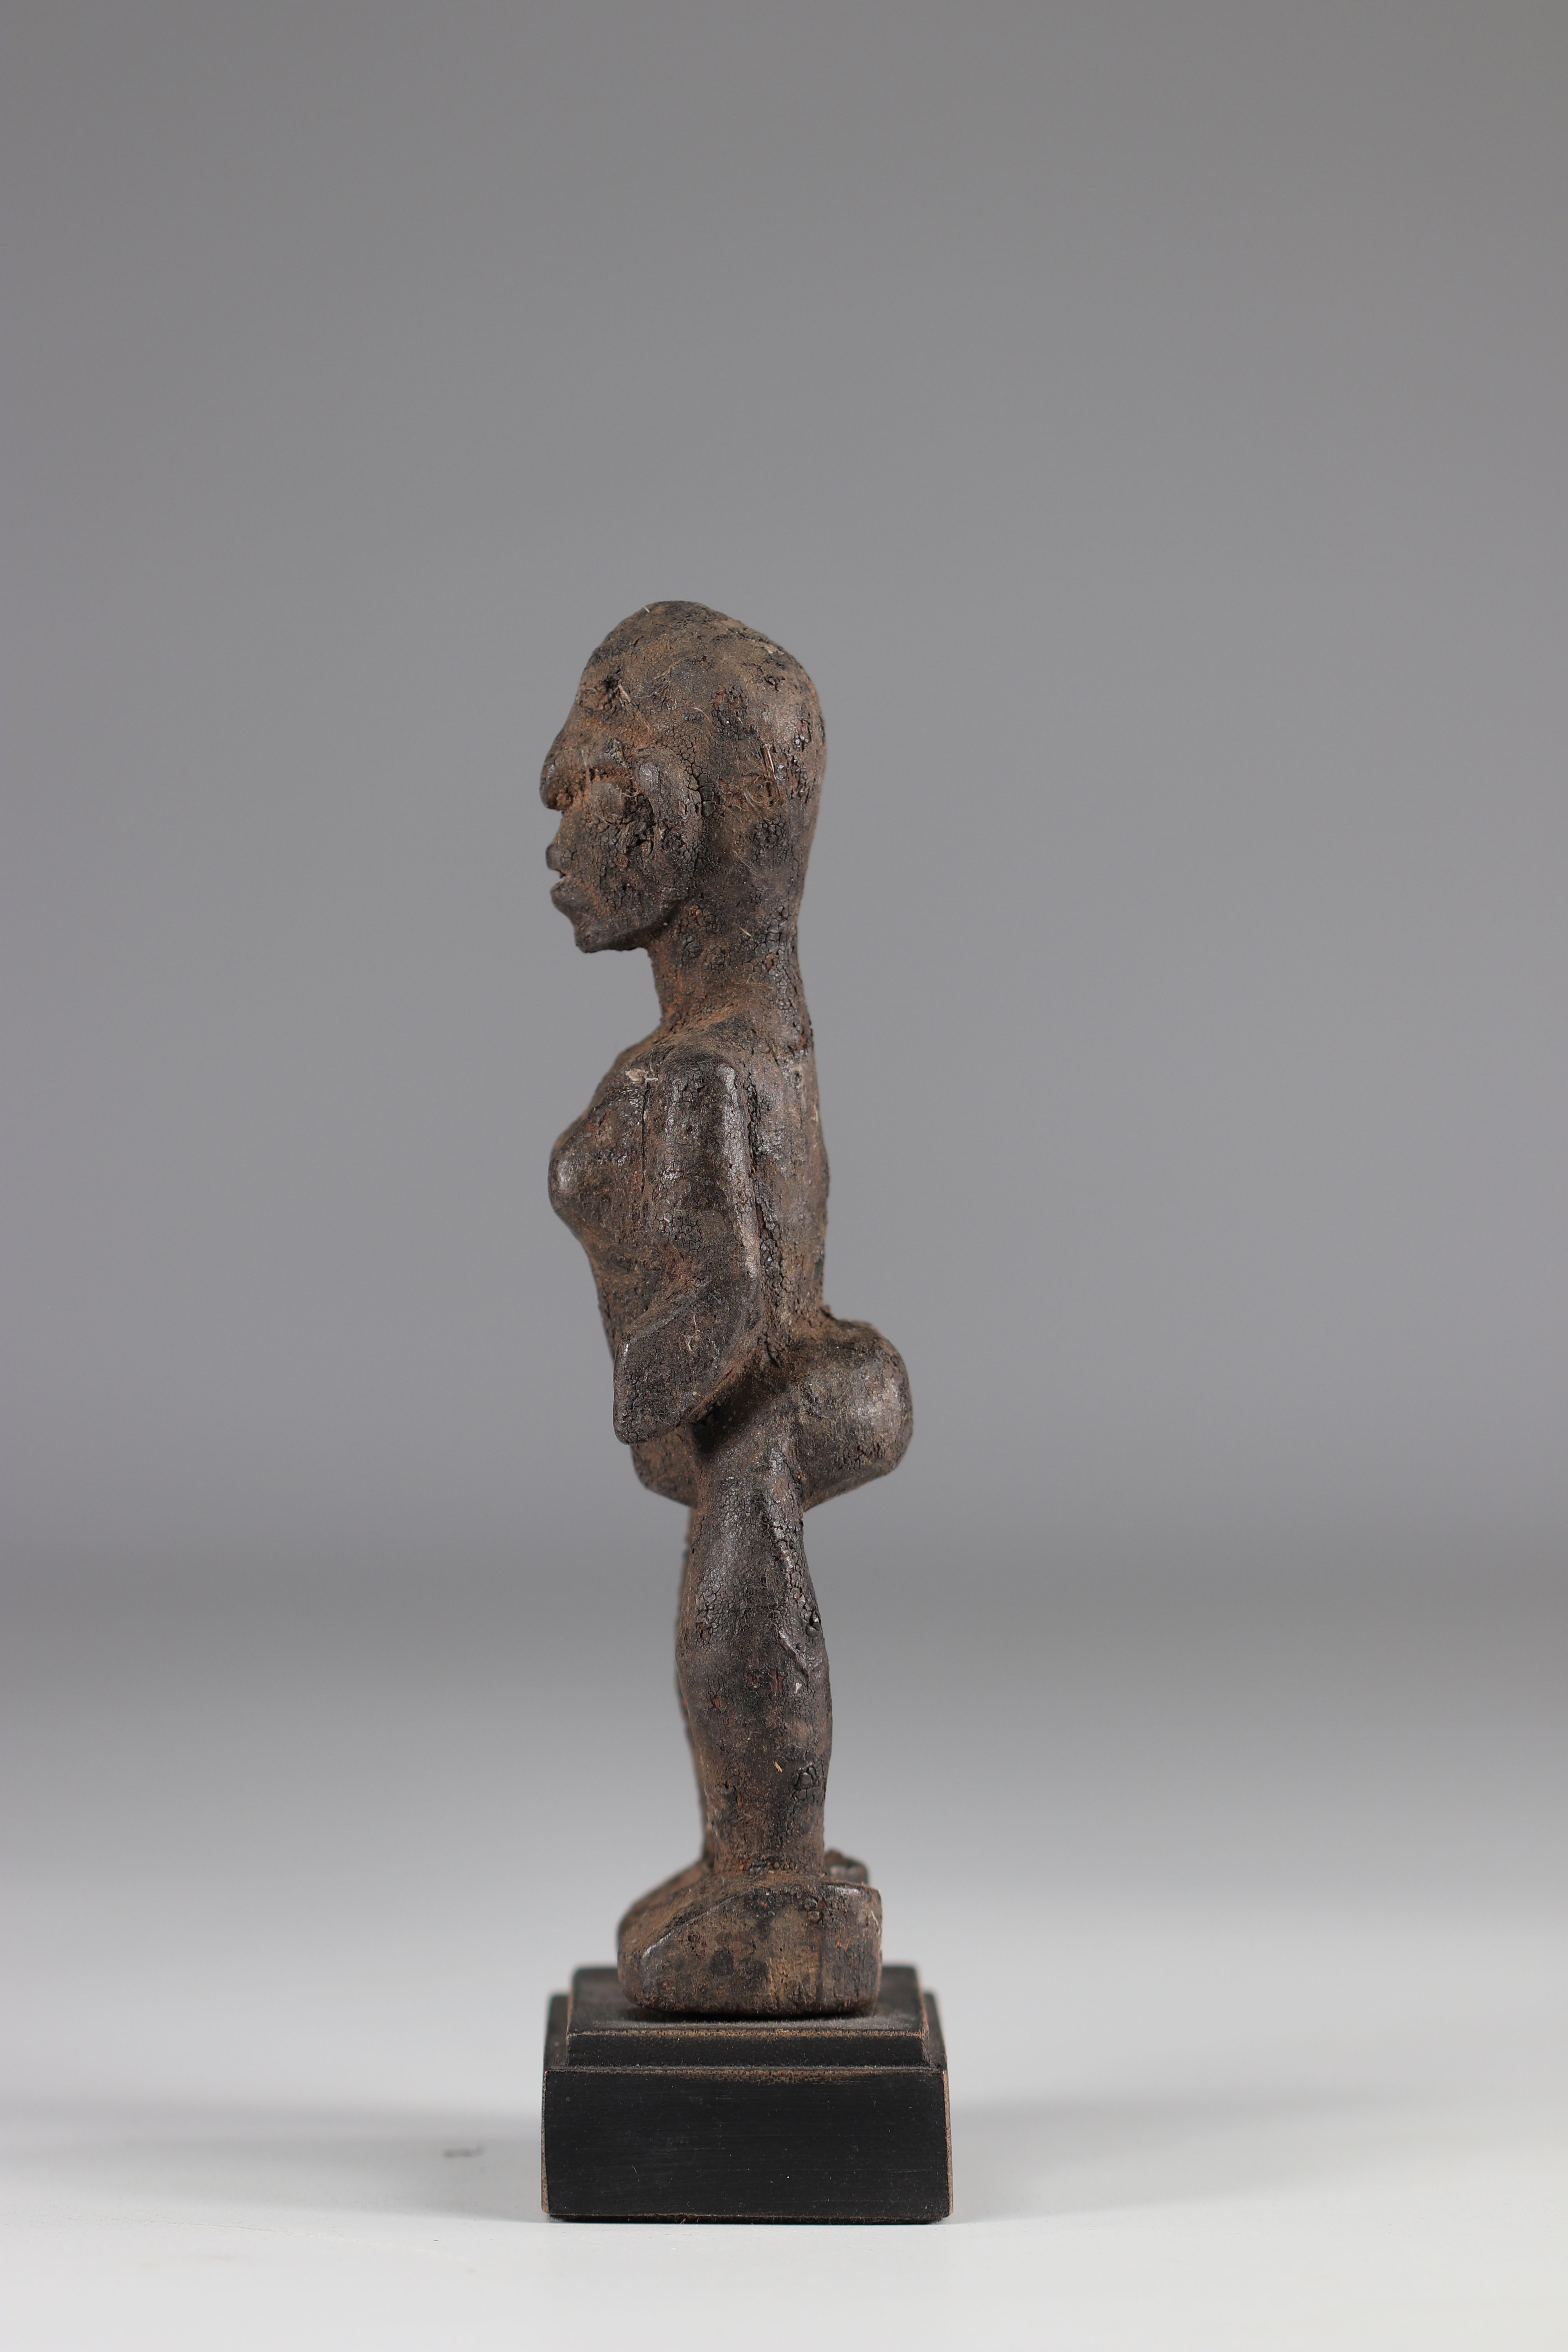 Kassena-Rare statuette and old Kassena statuette (Burkina Faso). Dense wood covered with a thick sac - Image 4 of 4